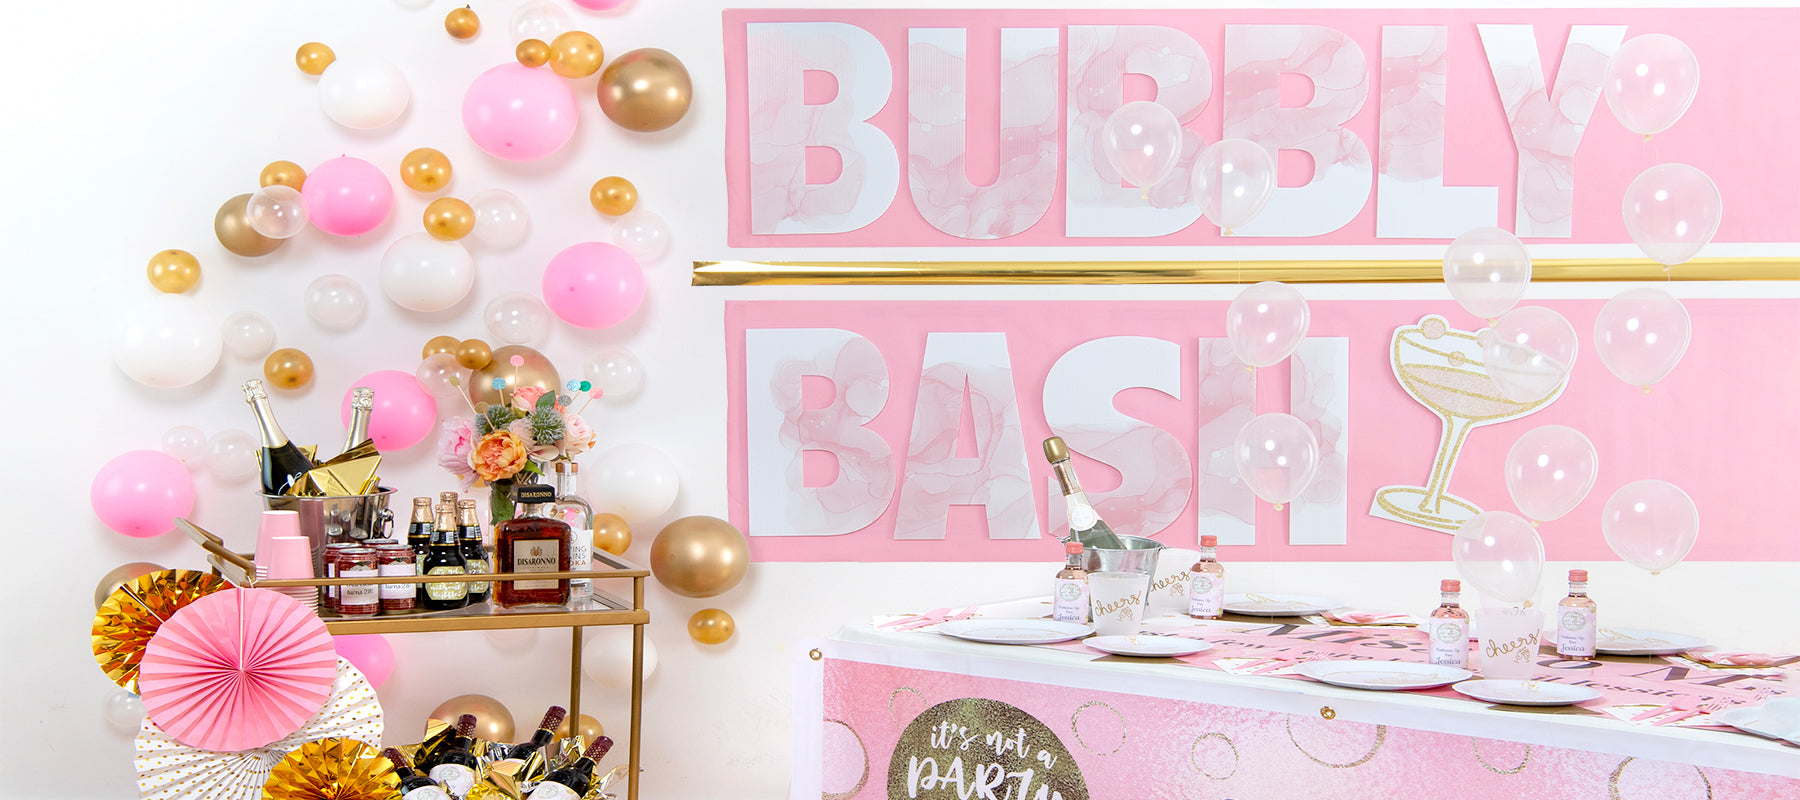 Bubbly Bash Birthday Theme